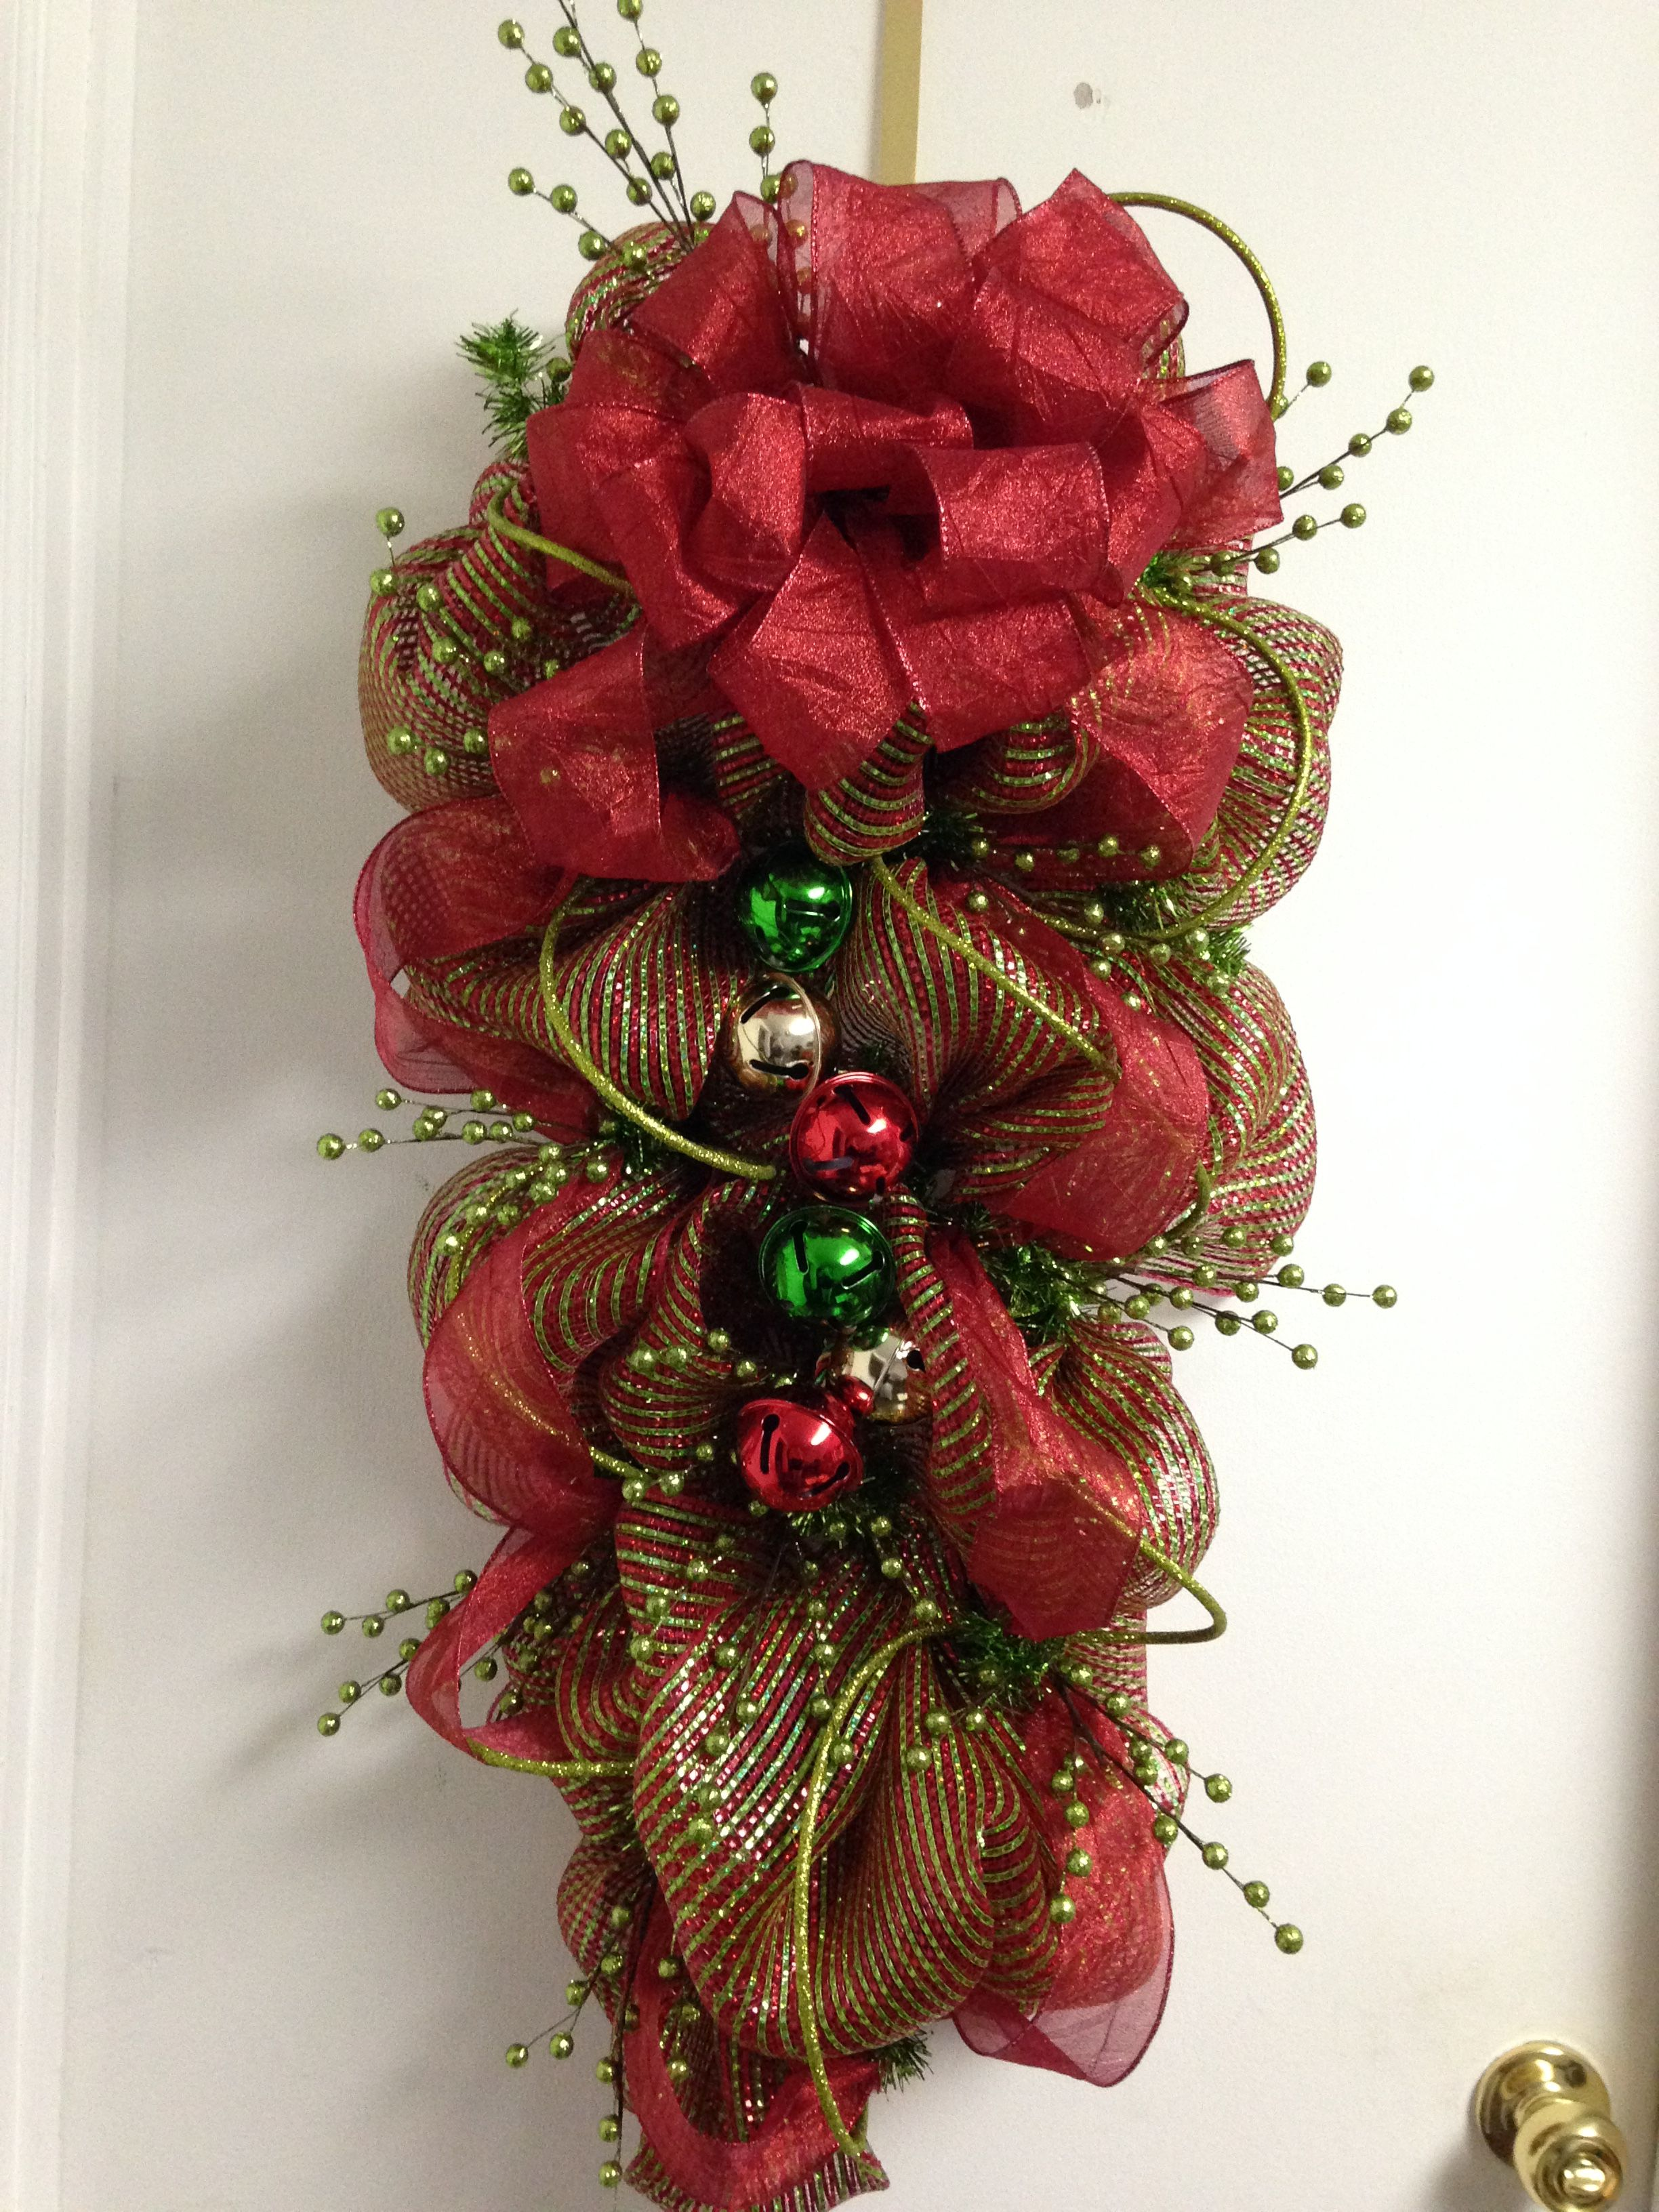 Pin by Annette Tomlinson on Deco Mesh Christmas Decorations